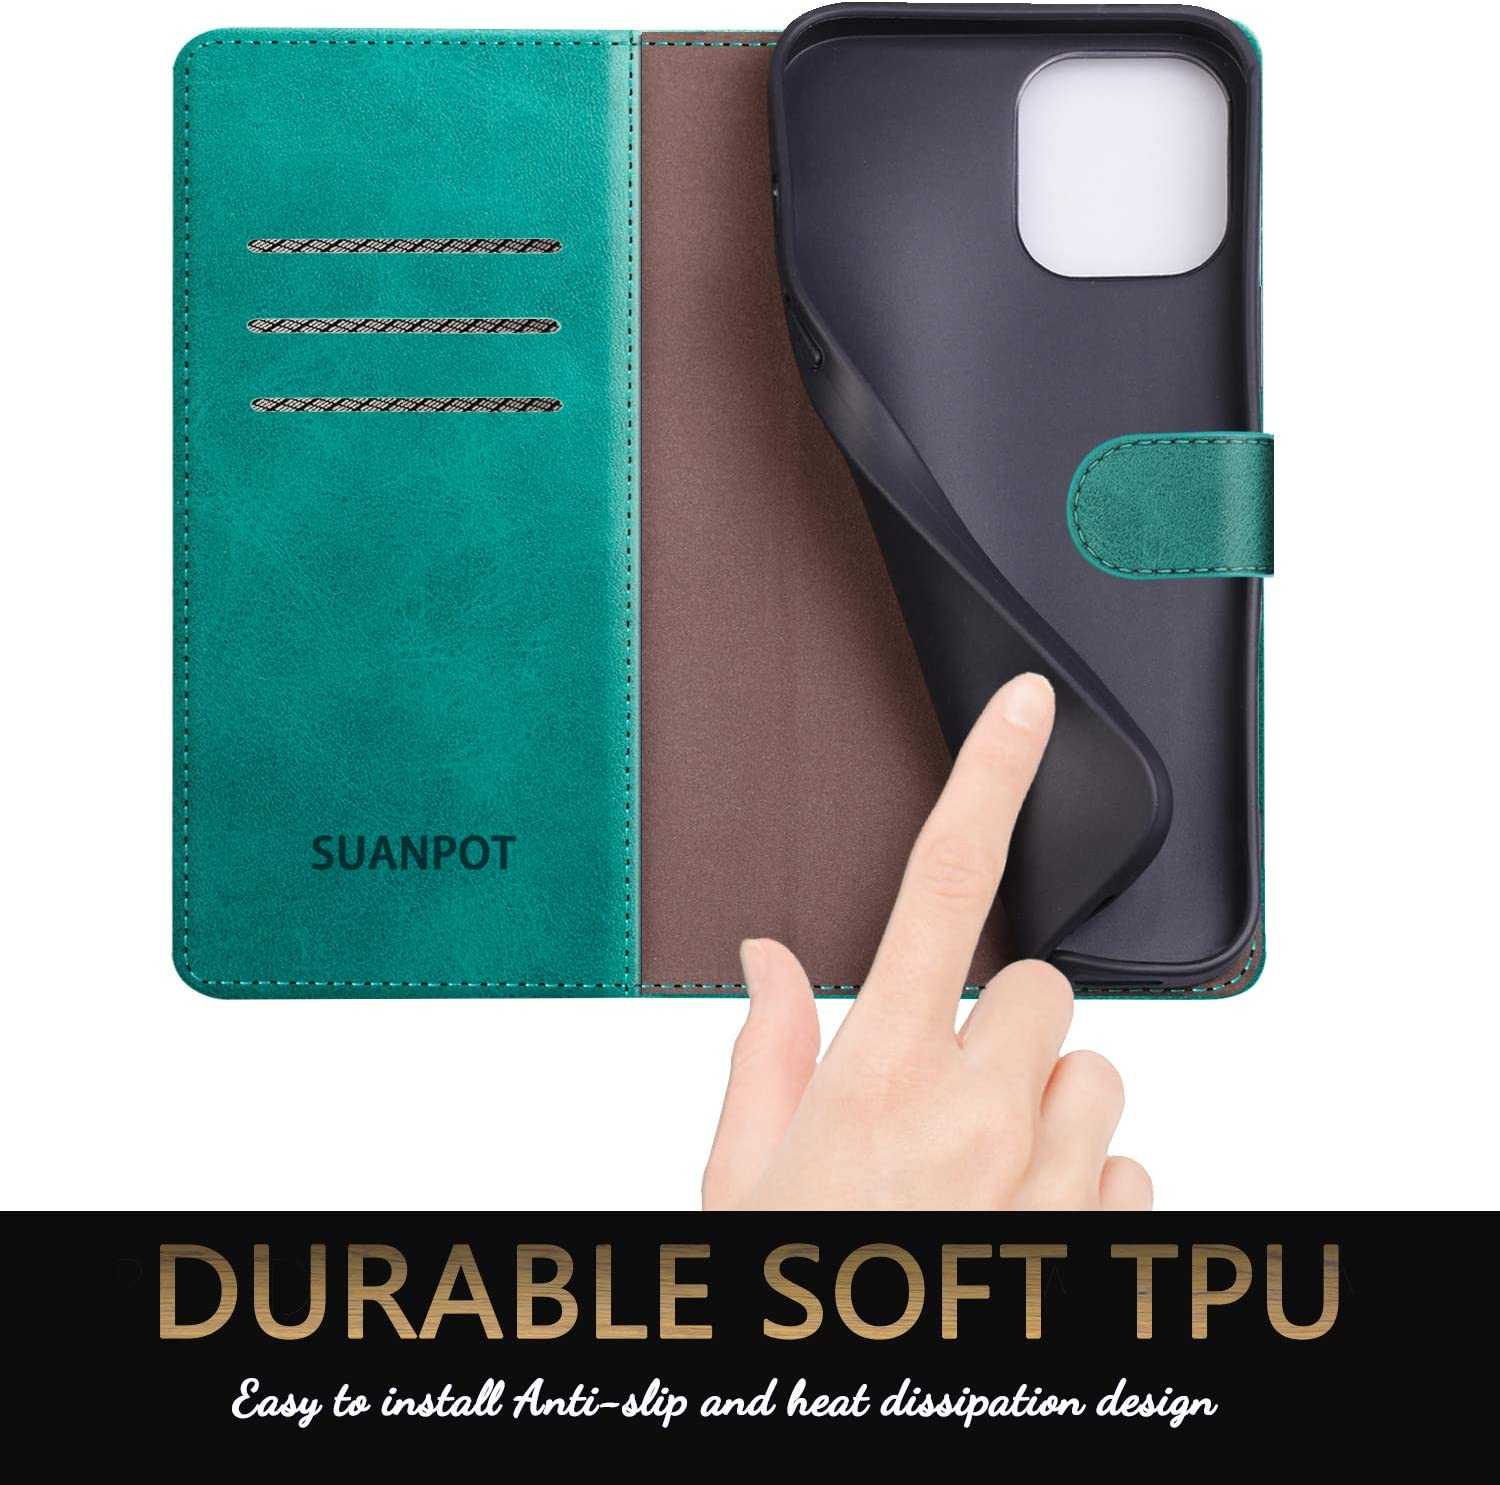 SUANPOT for iPhone 12 Pro Max Leather Wallet case with RFID Blocking Credit Card Holder, Flip Folio Book Magnetic PU Cell Phone Plus Cover for Apple 12 promax Leather case for Men Women 6.7